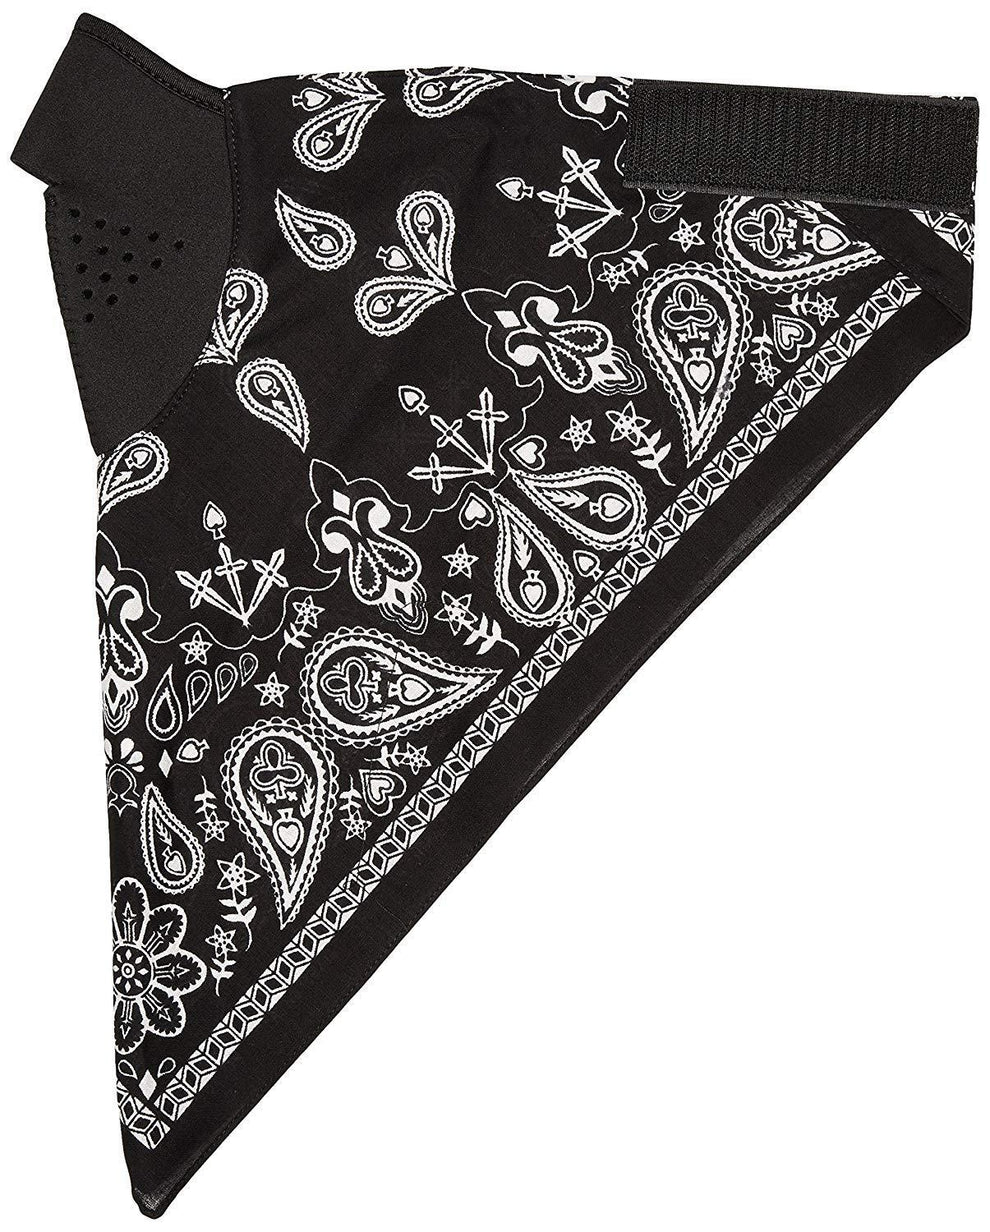 Zan Headgear NeoDanna Black Paisley 100% Cotton Bandanna with Neoprene